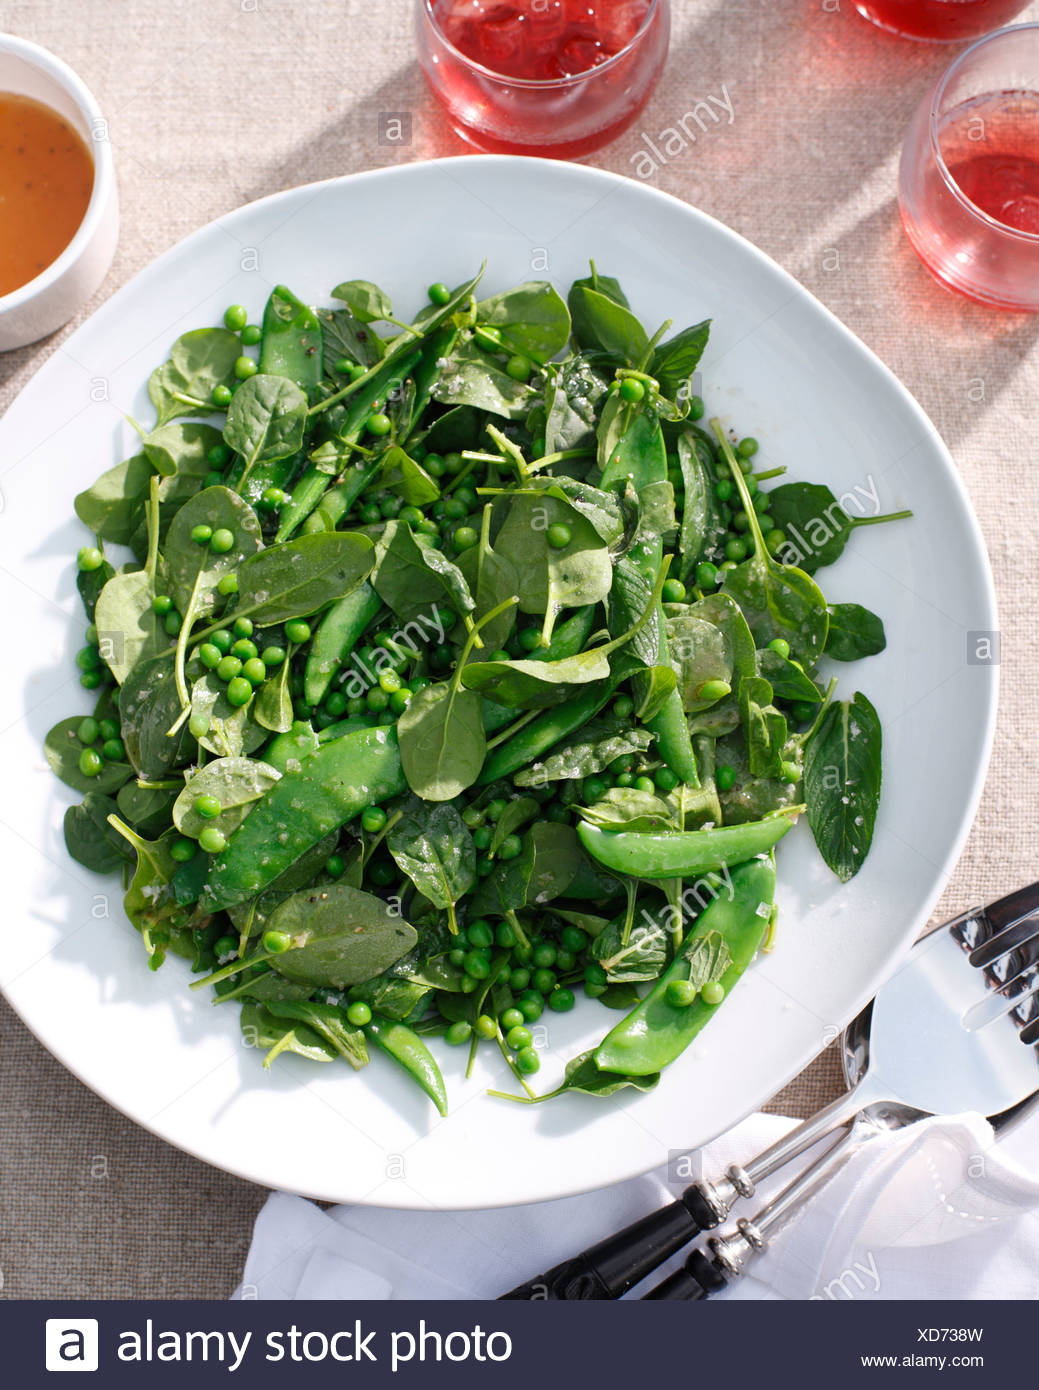 Plates of salad with peas and baby spinach - Stock Image